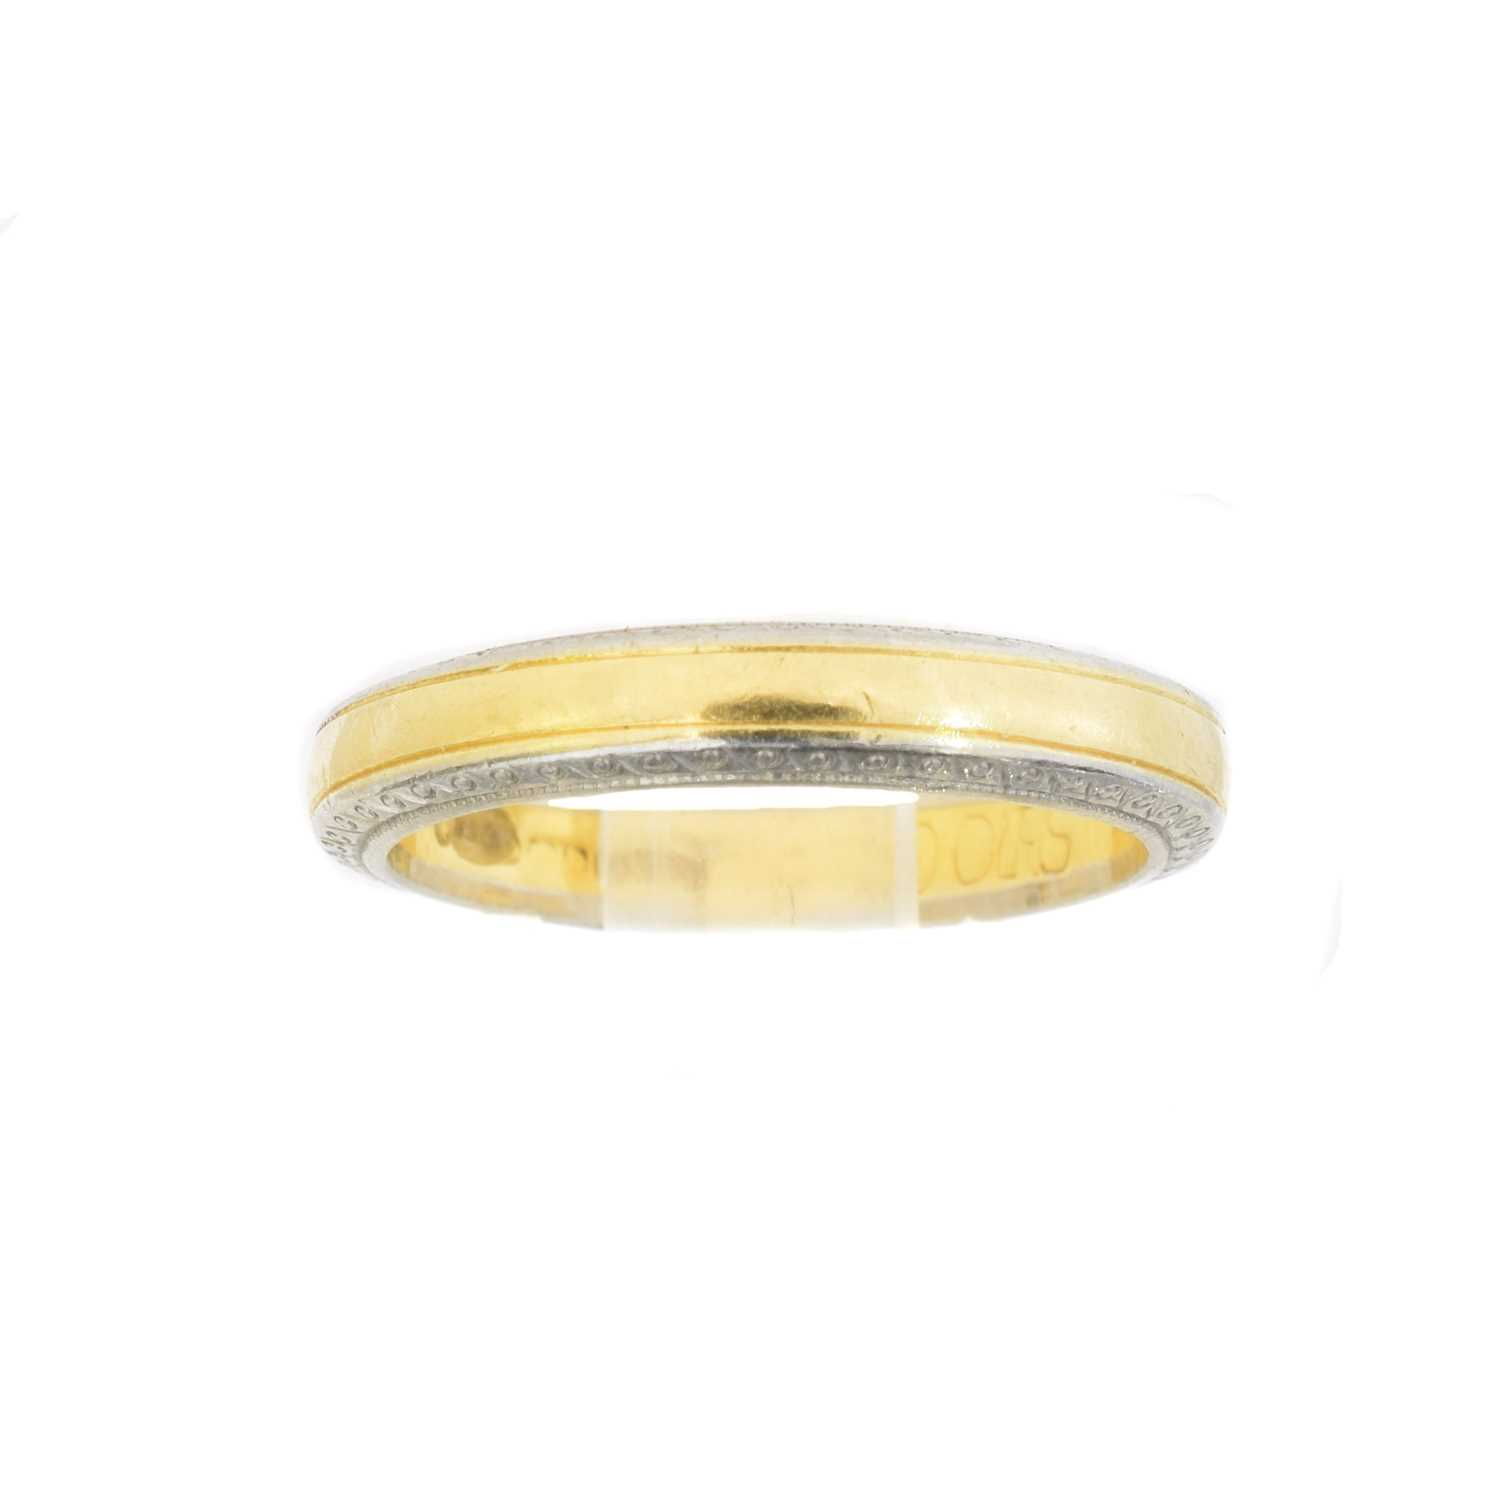 An 18ct gold band ring by Boodles,